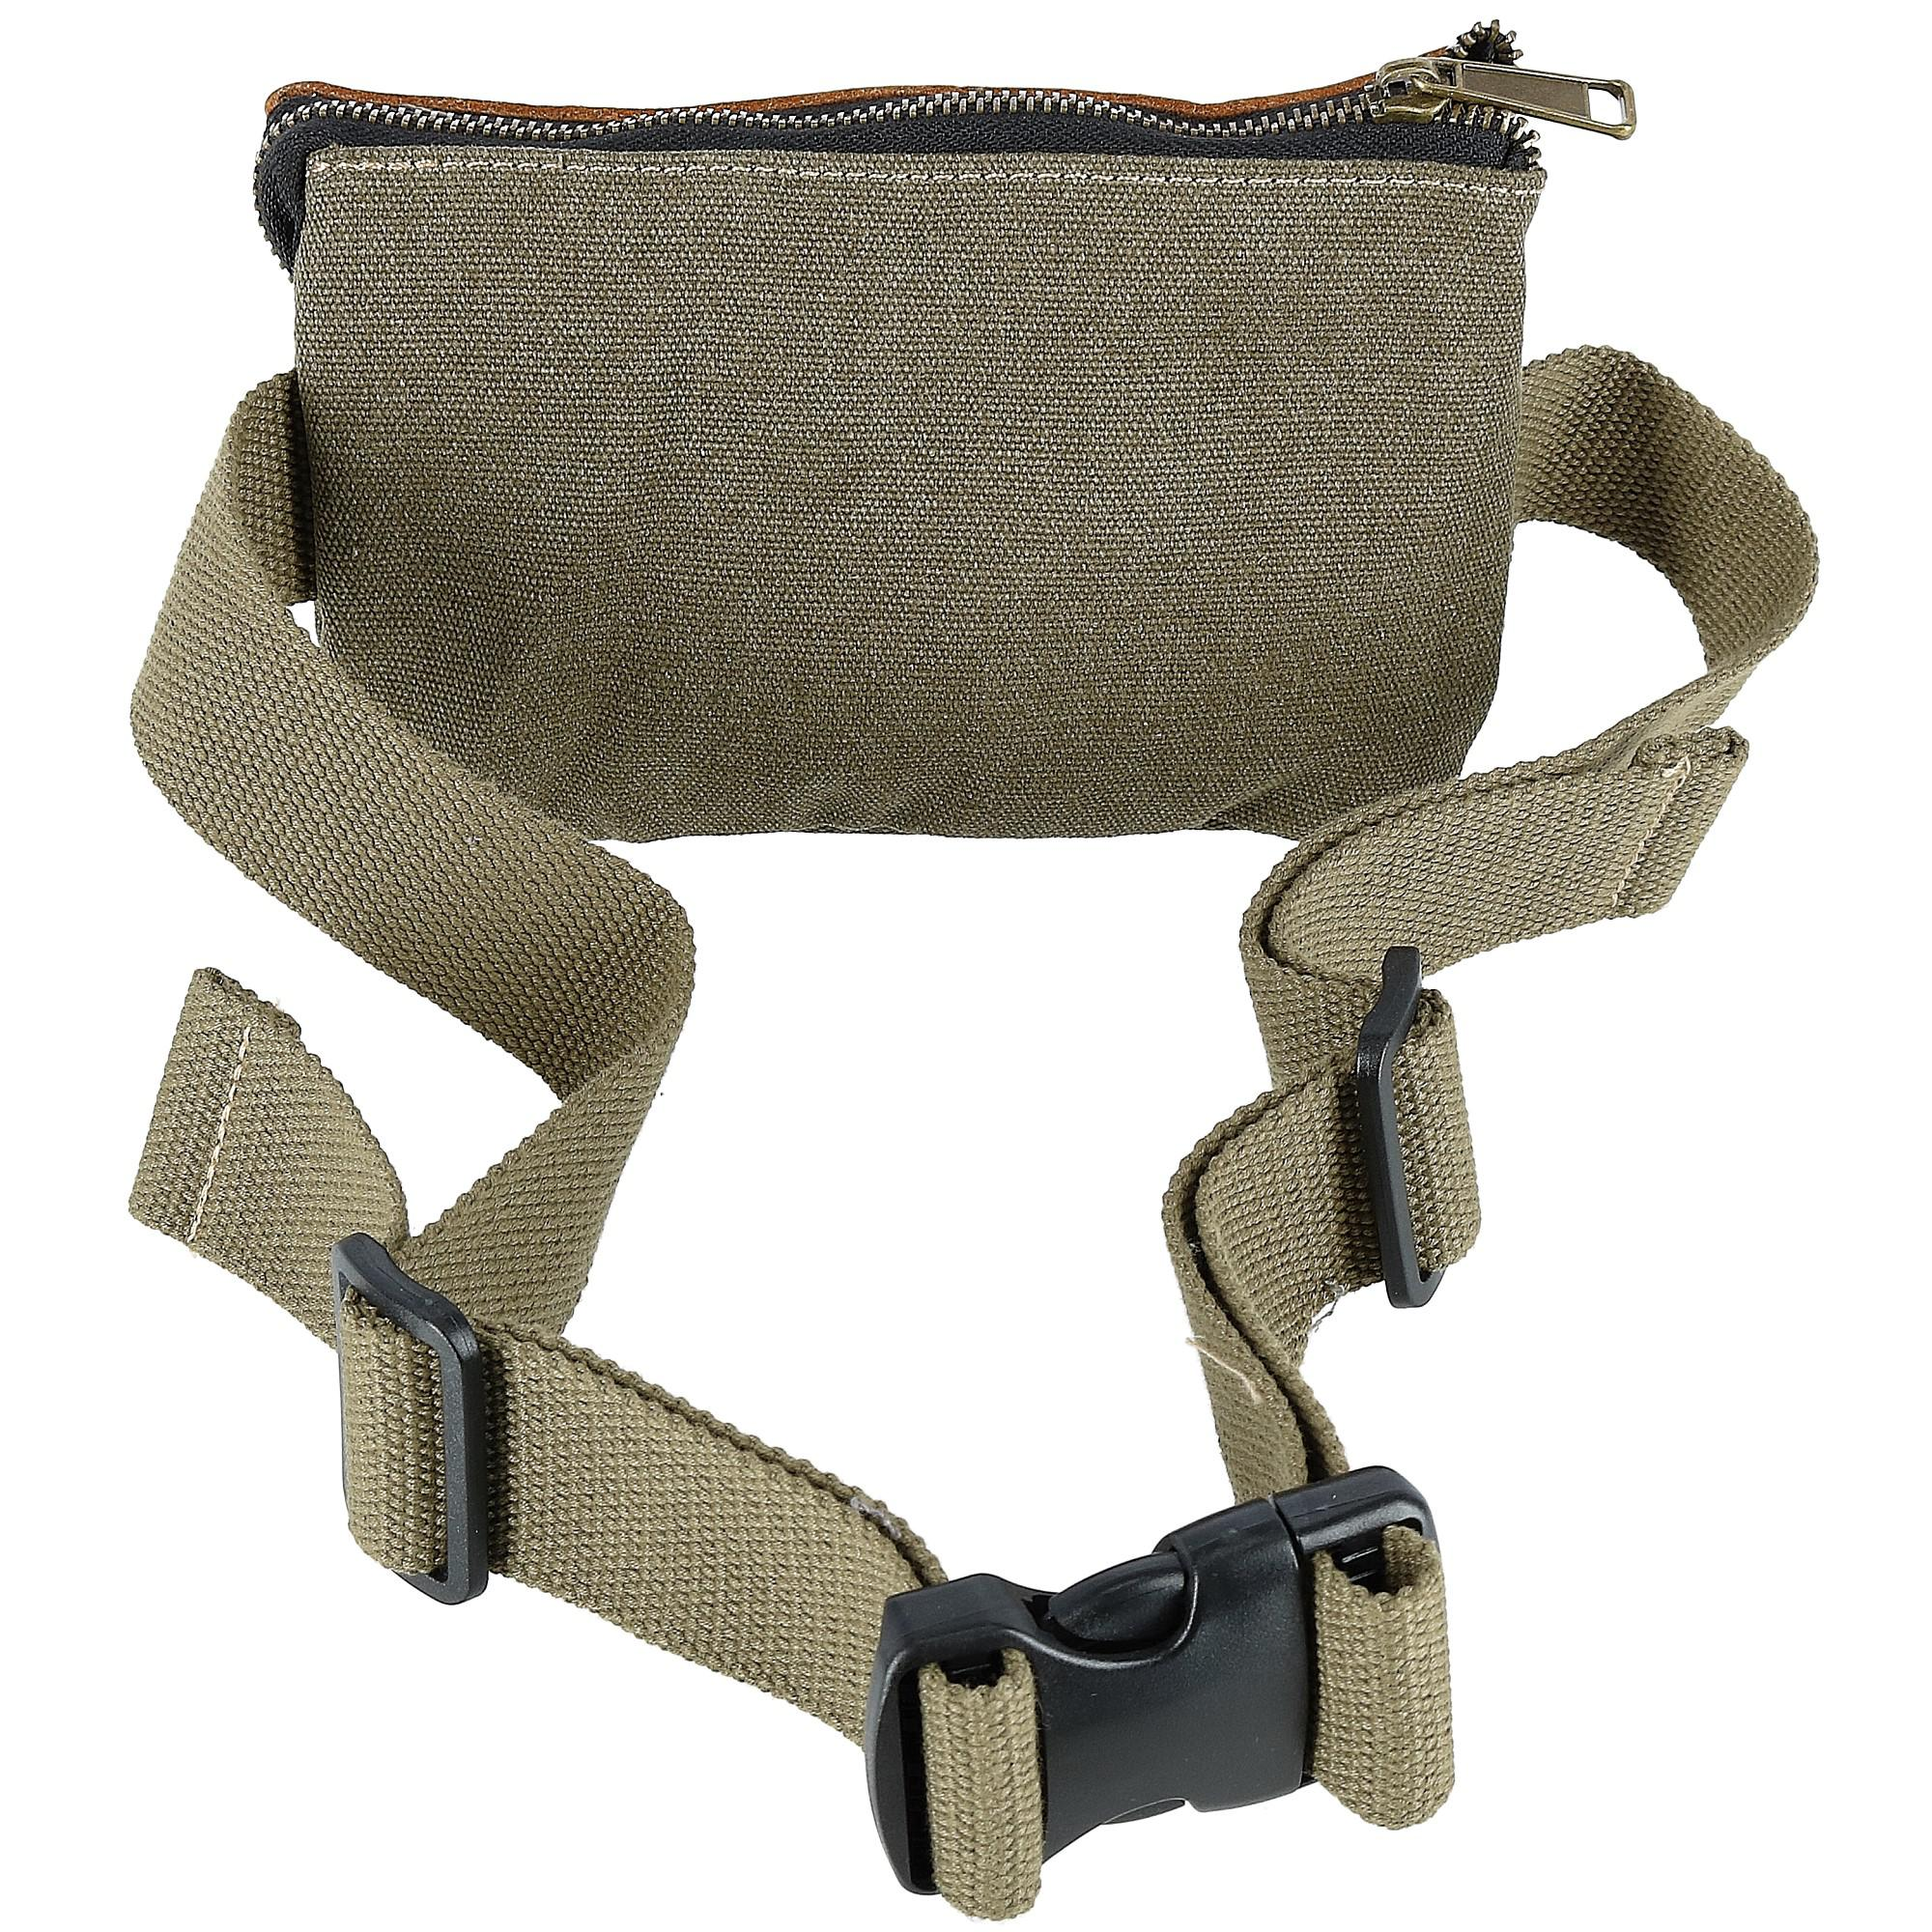 CTM Canvas and Leather Multi Pocket Waist Pack - image 1 of 3